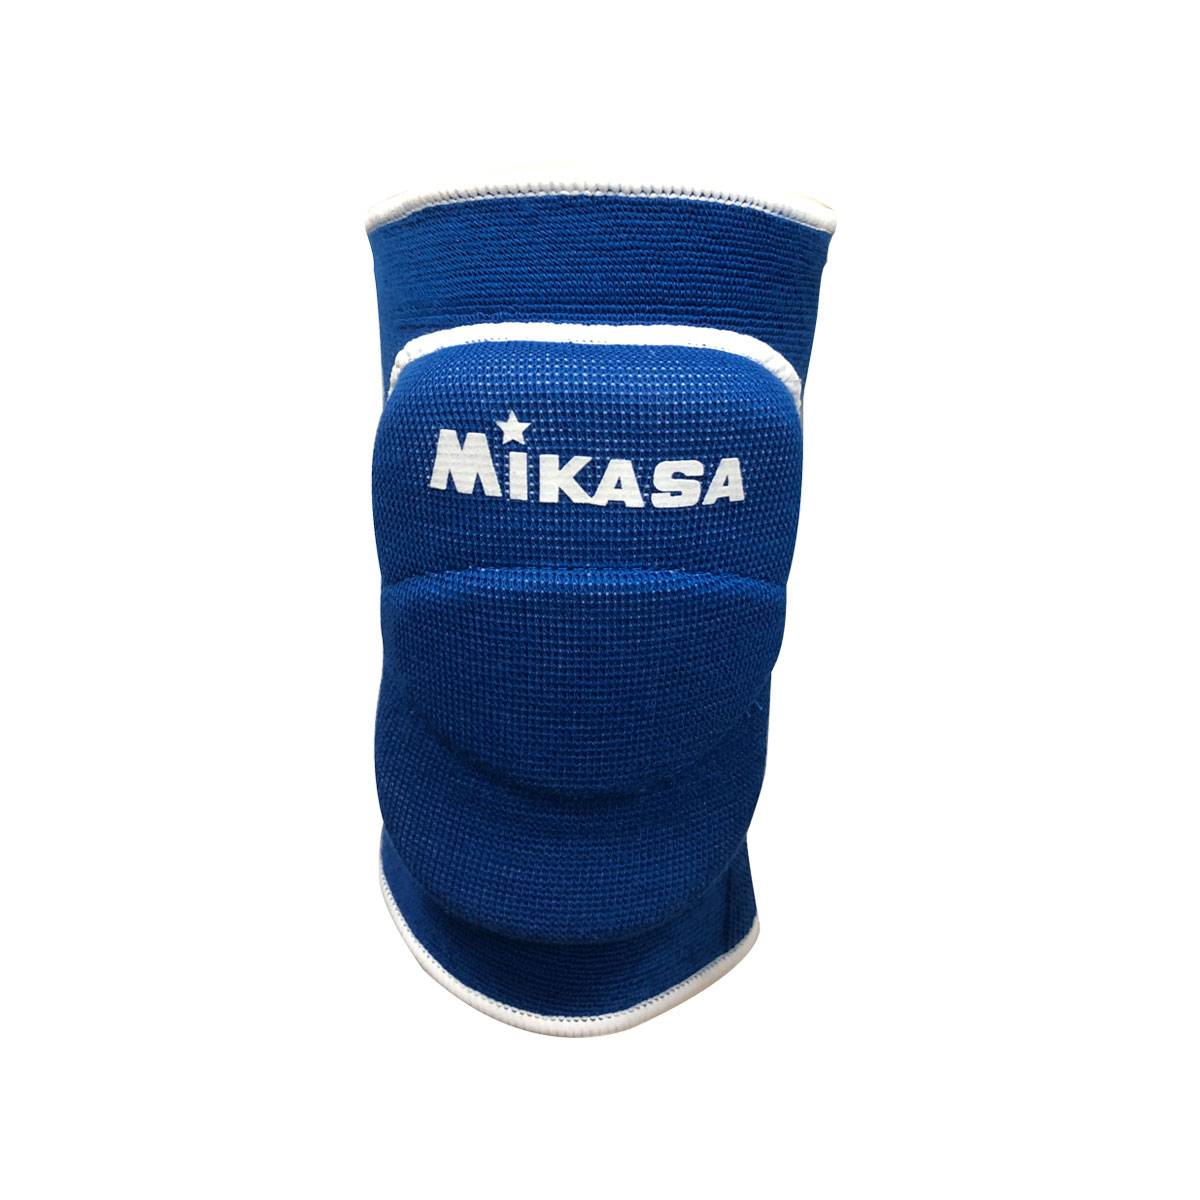 Mikasa Ginocchiere Volley Serial MT1 Royal - L - Unisex